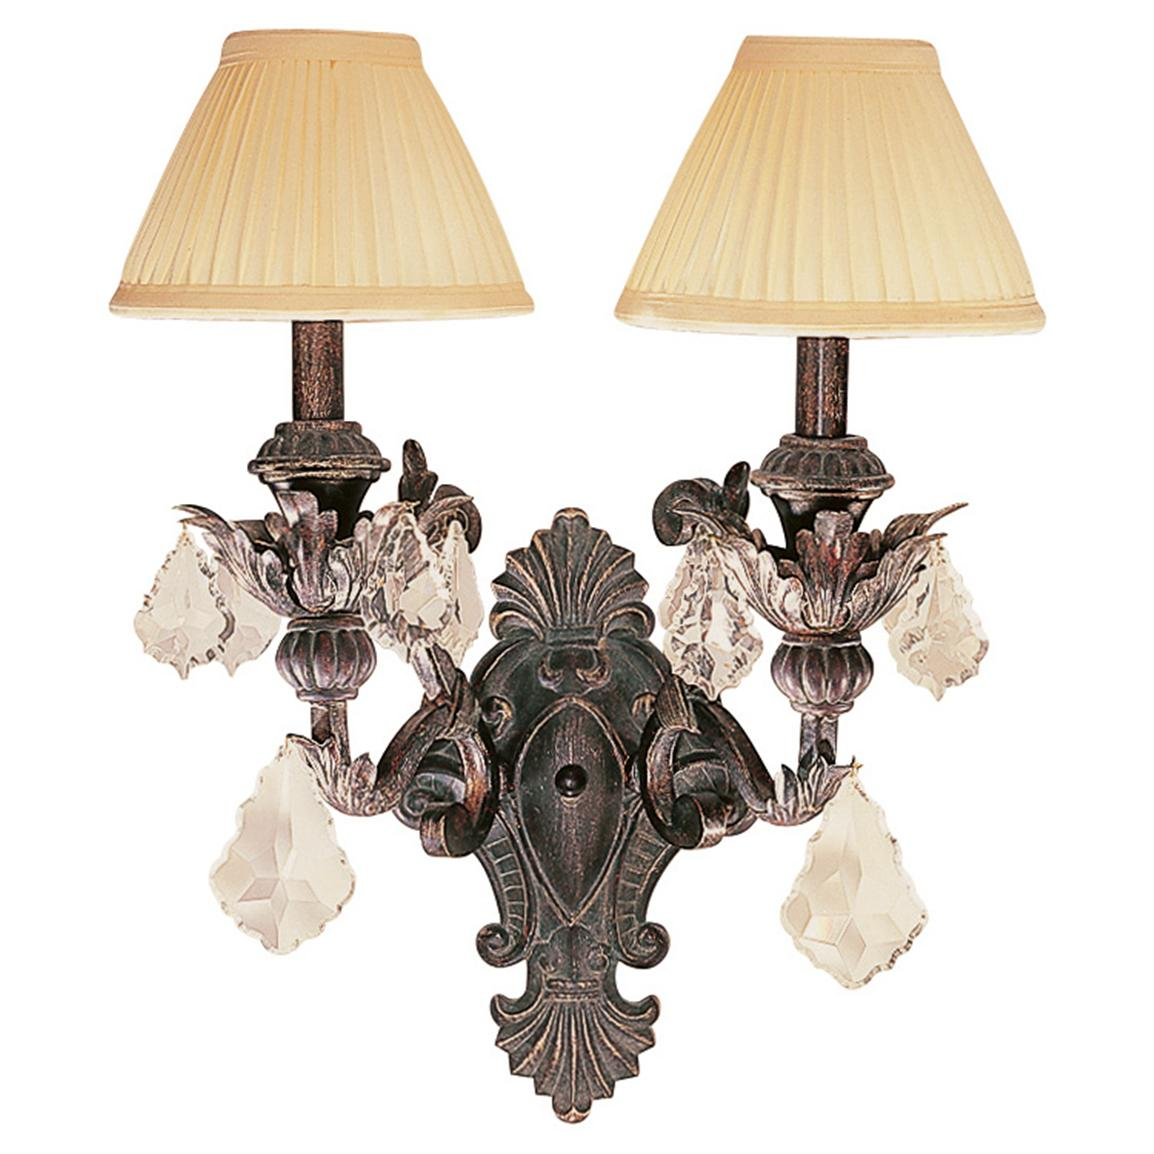 Trans Globe Lighting® Leafed Patina Double Wall Sconce